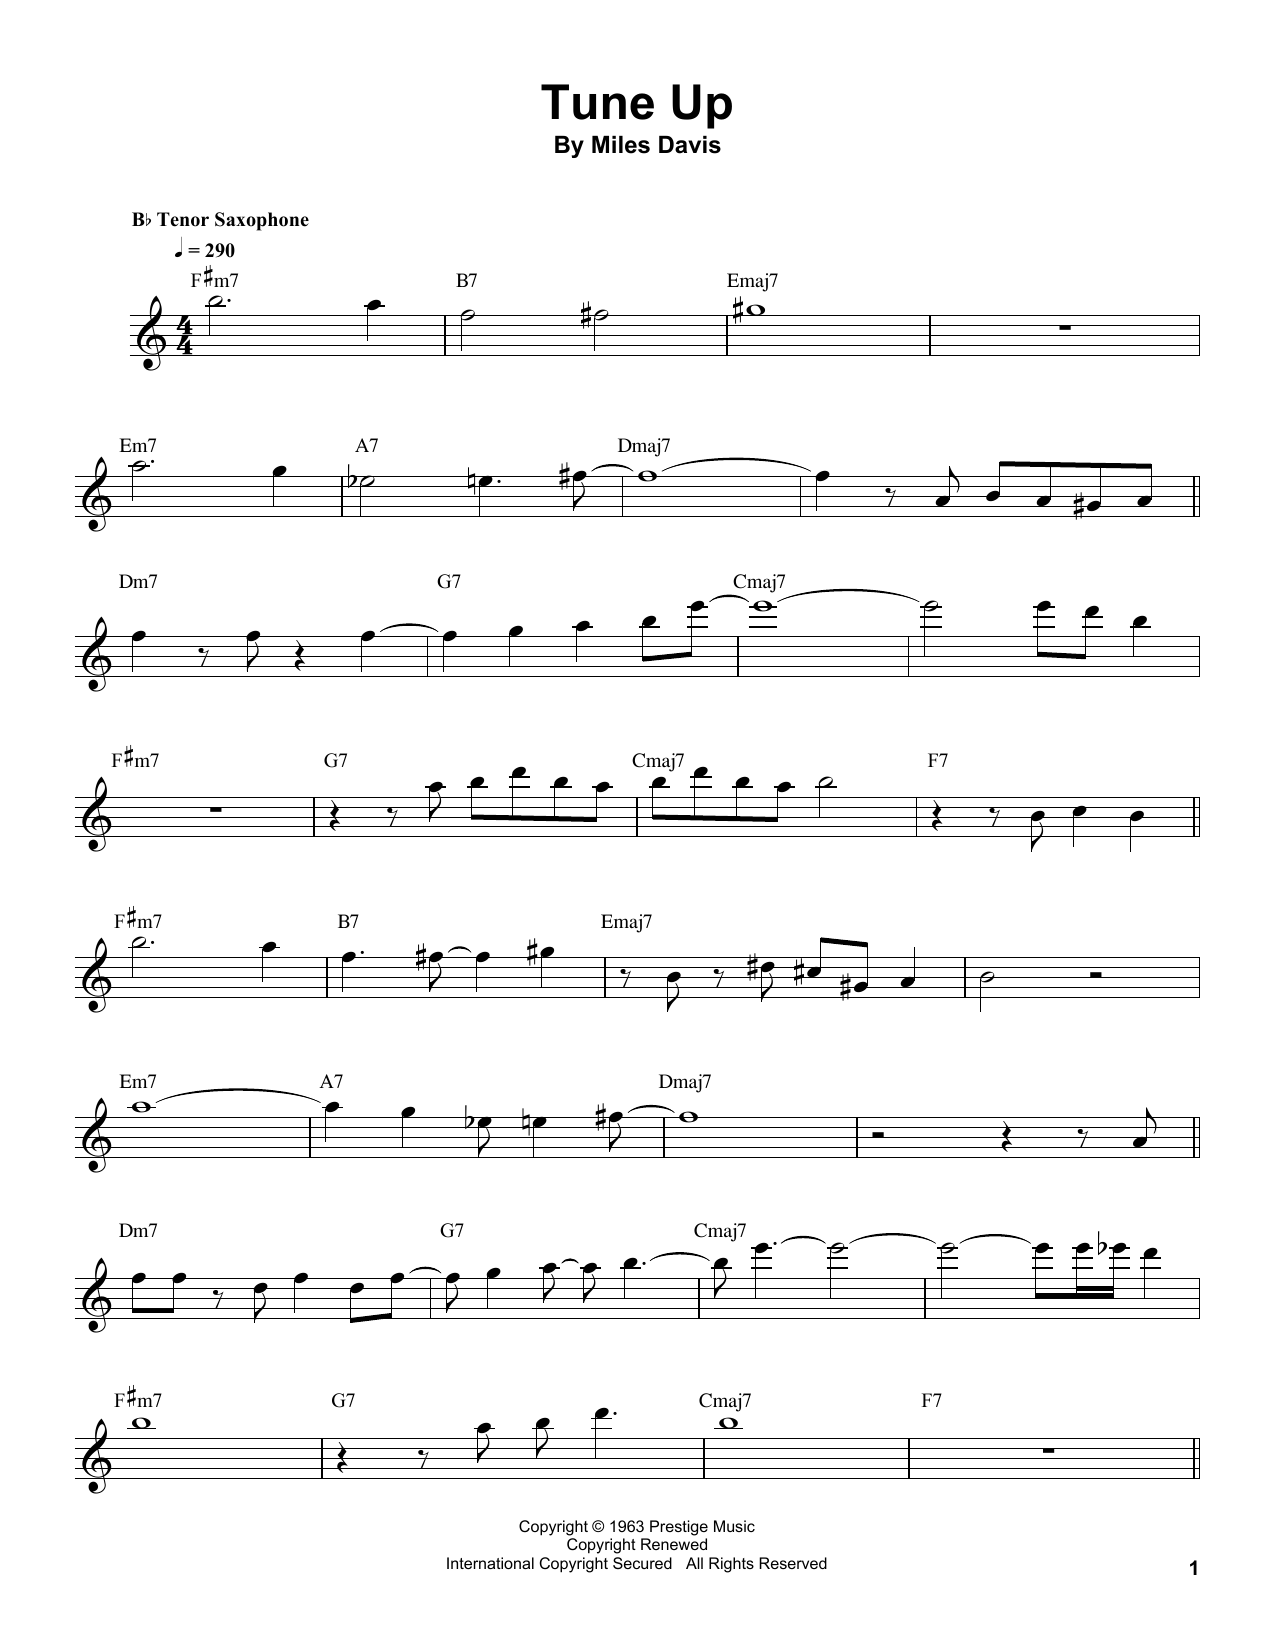 Tune Up Sheet Music